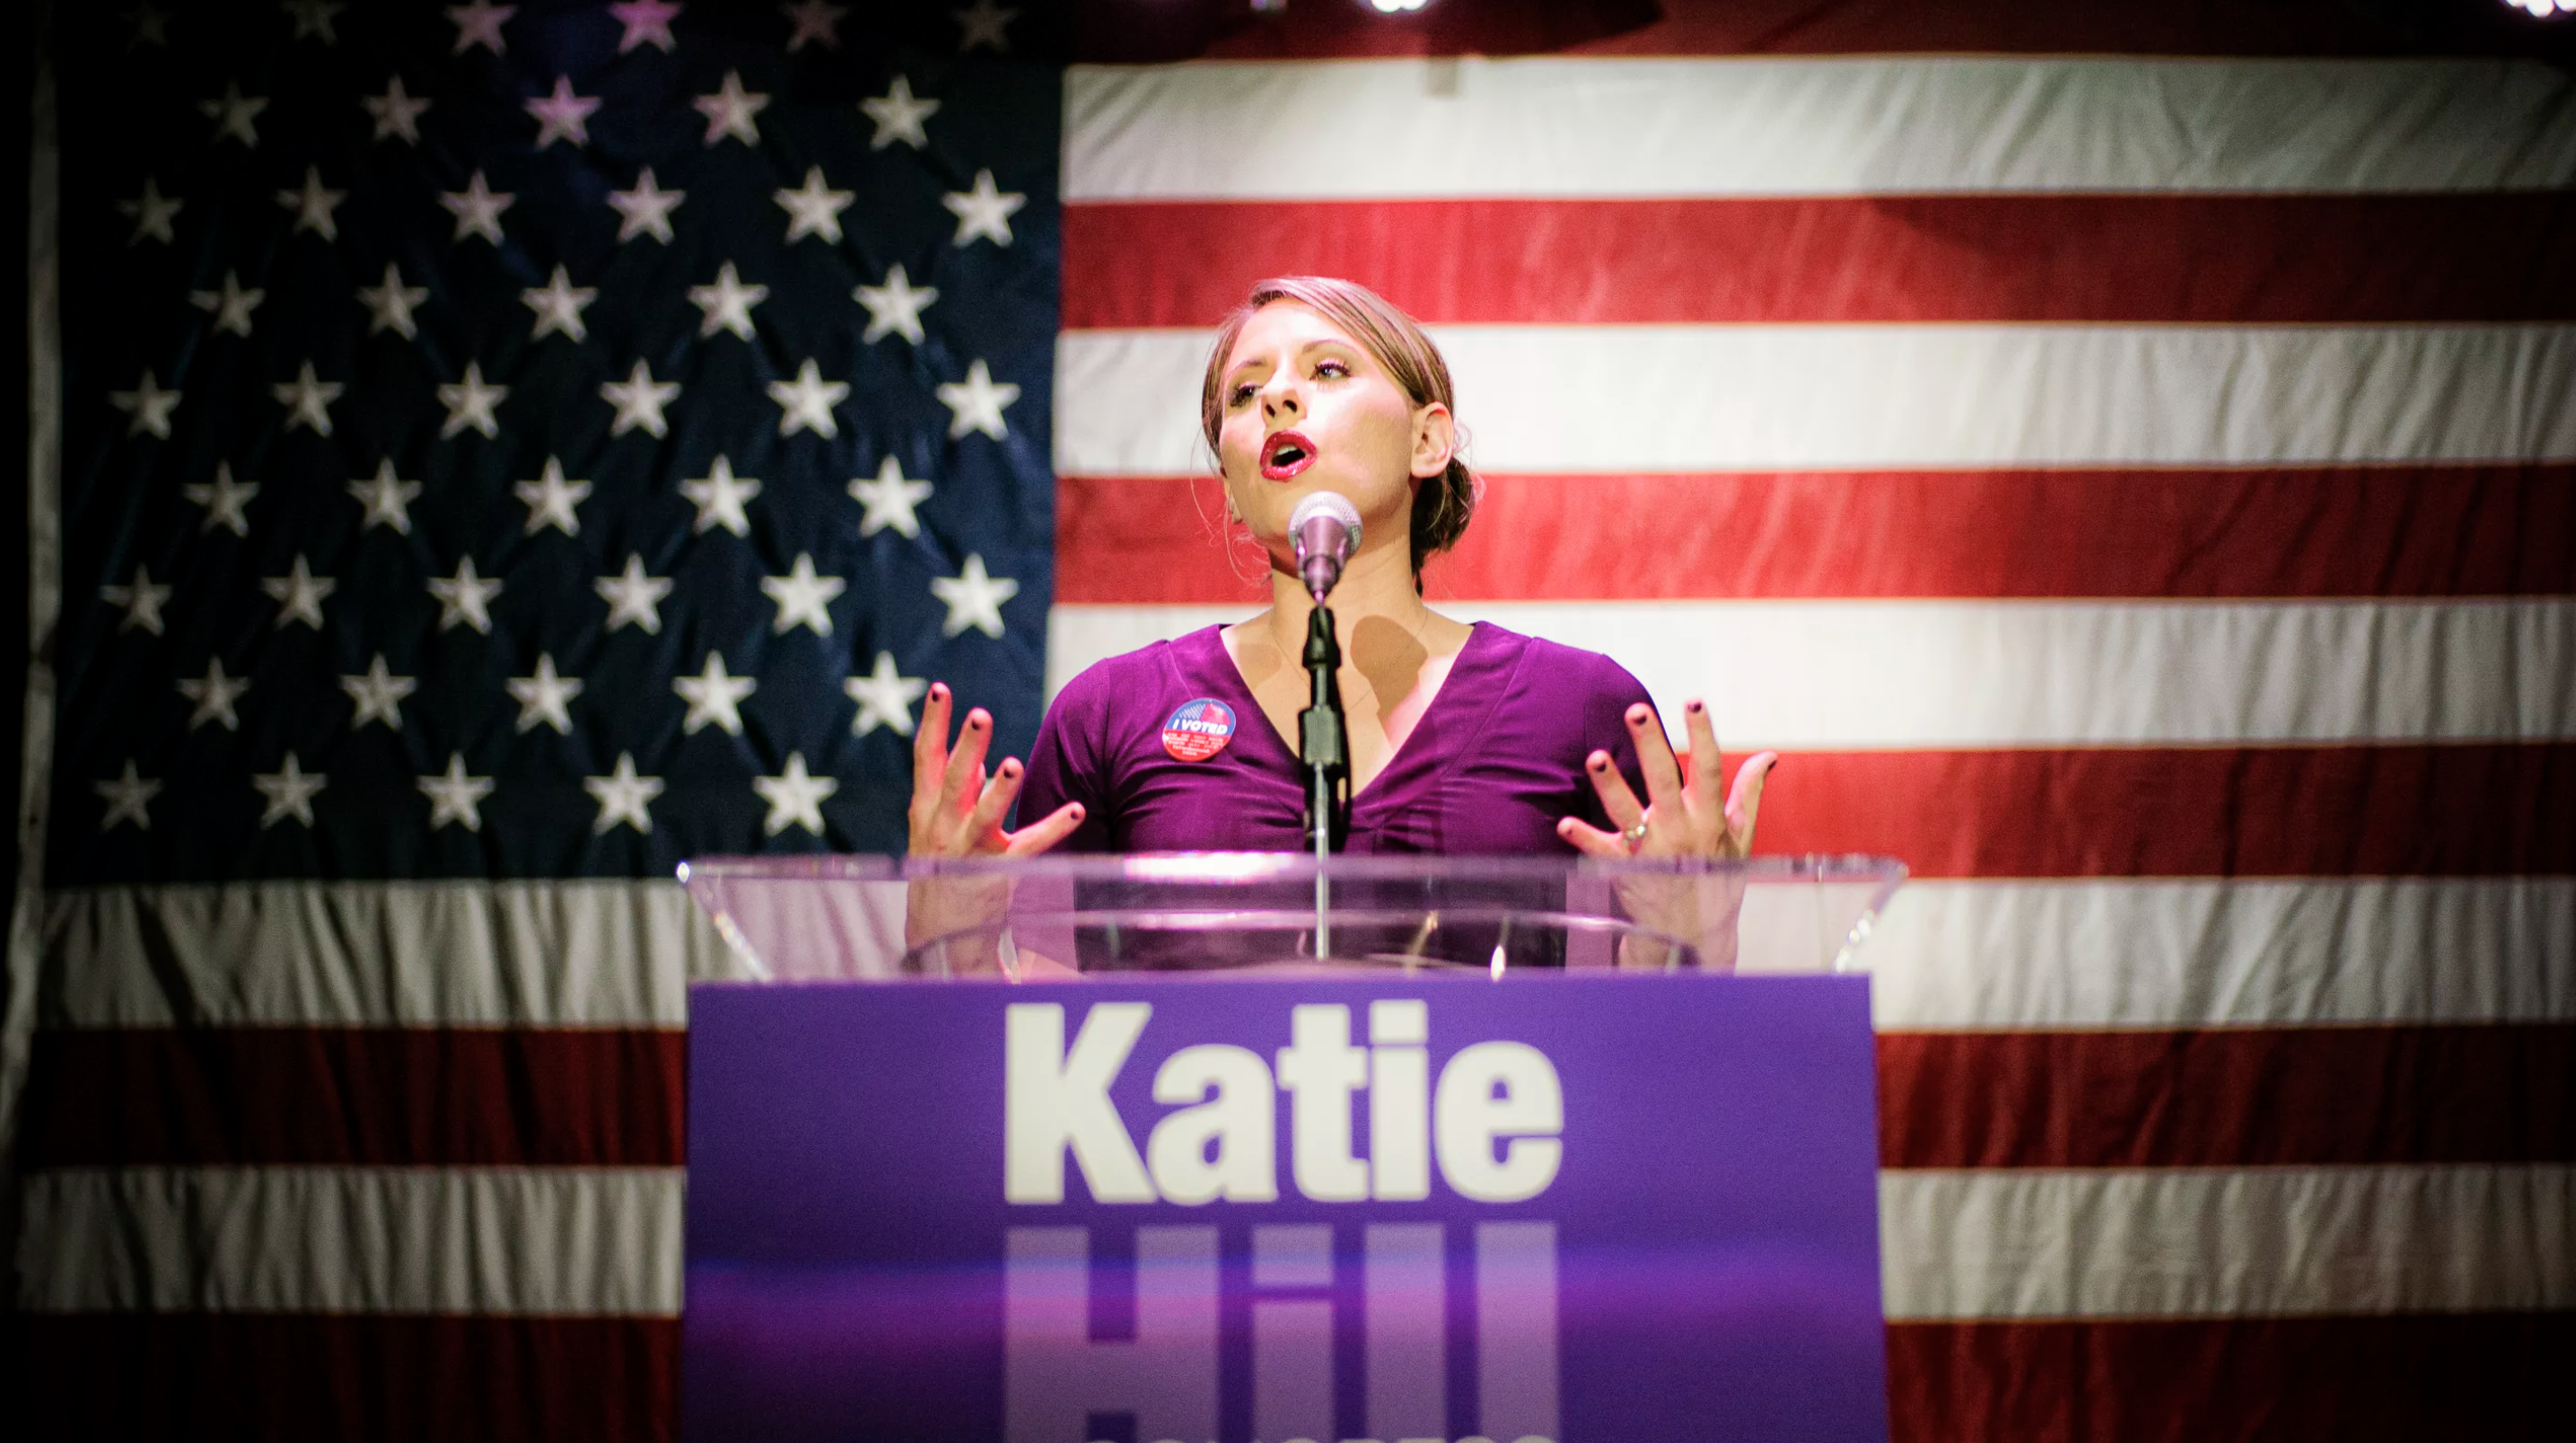 Politician Katie Hill is standing and giving a speech front of an American flag